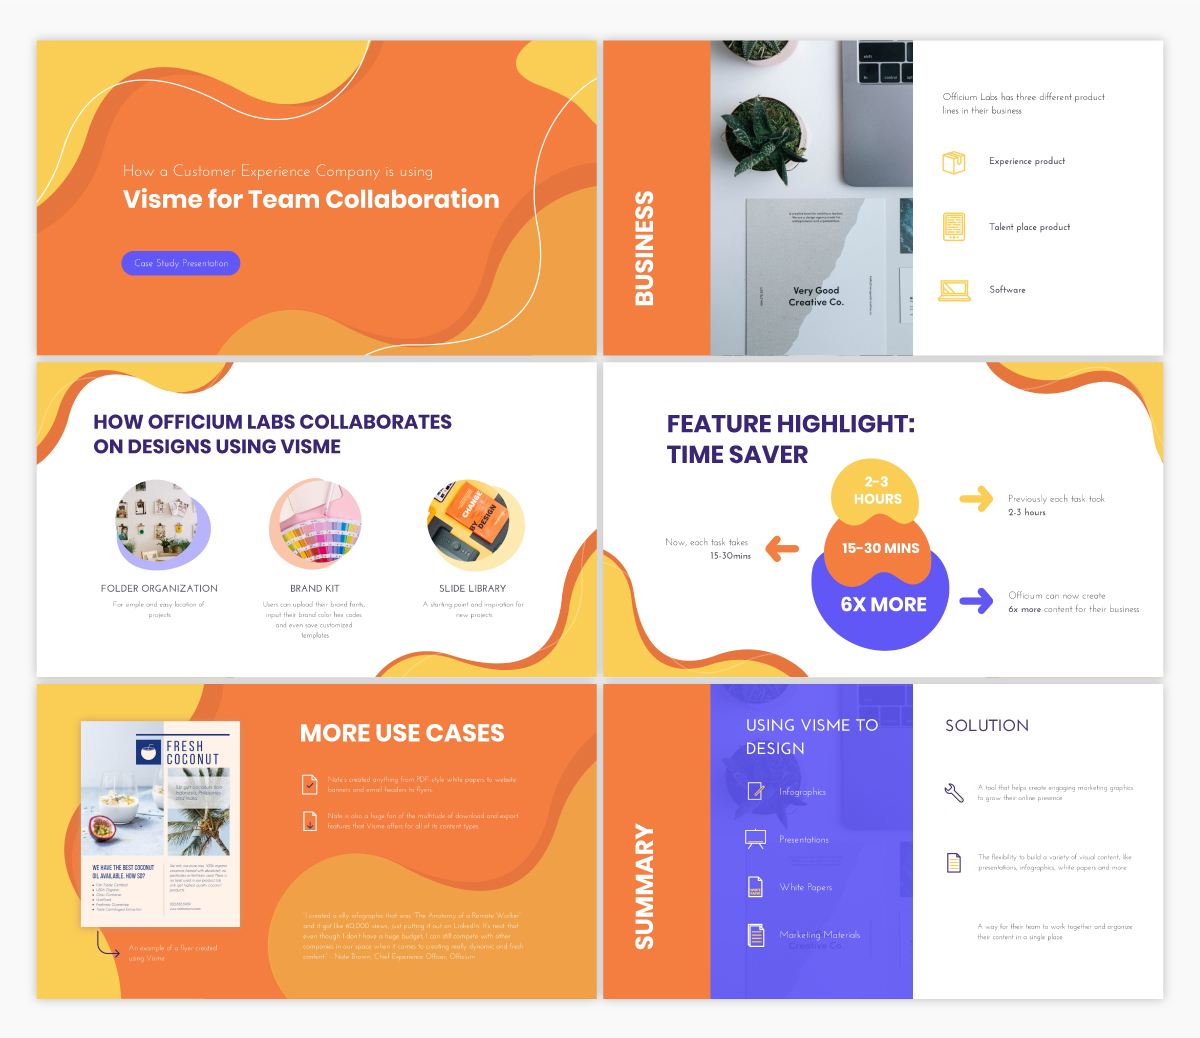 A case study presentation template available in Visme.